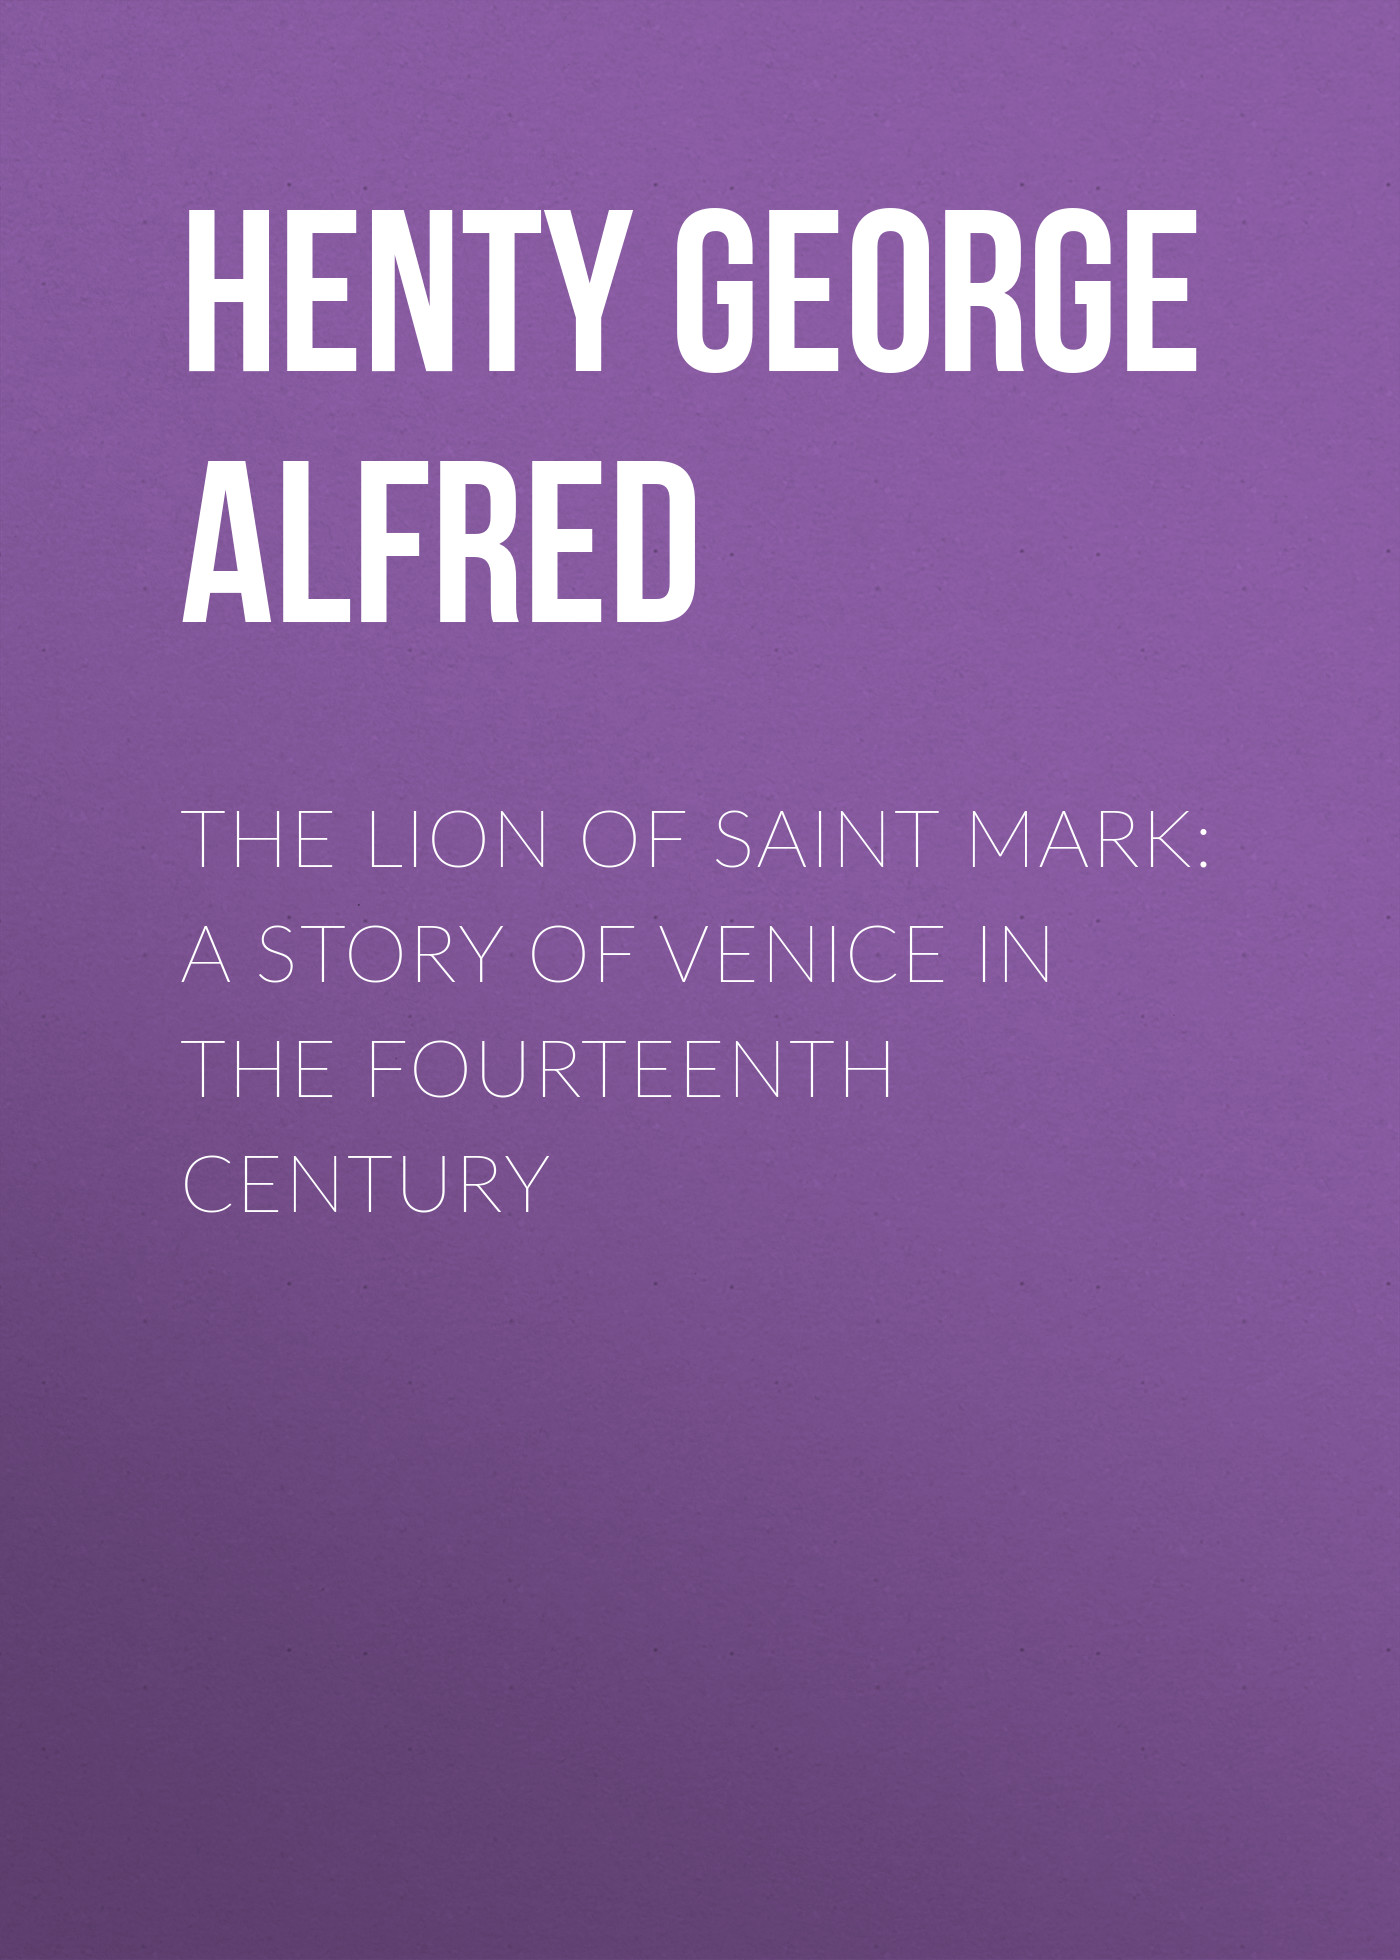 Henty George Alfred The Lion of Saint Mark: A Story of Venice in the Fourteenth Century george alfred henty with lee in virginia a story of the american civil war